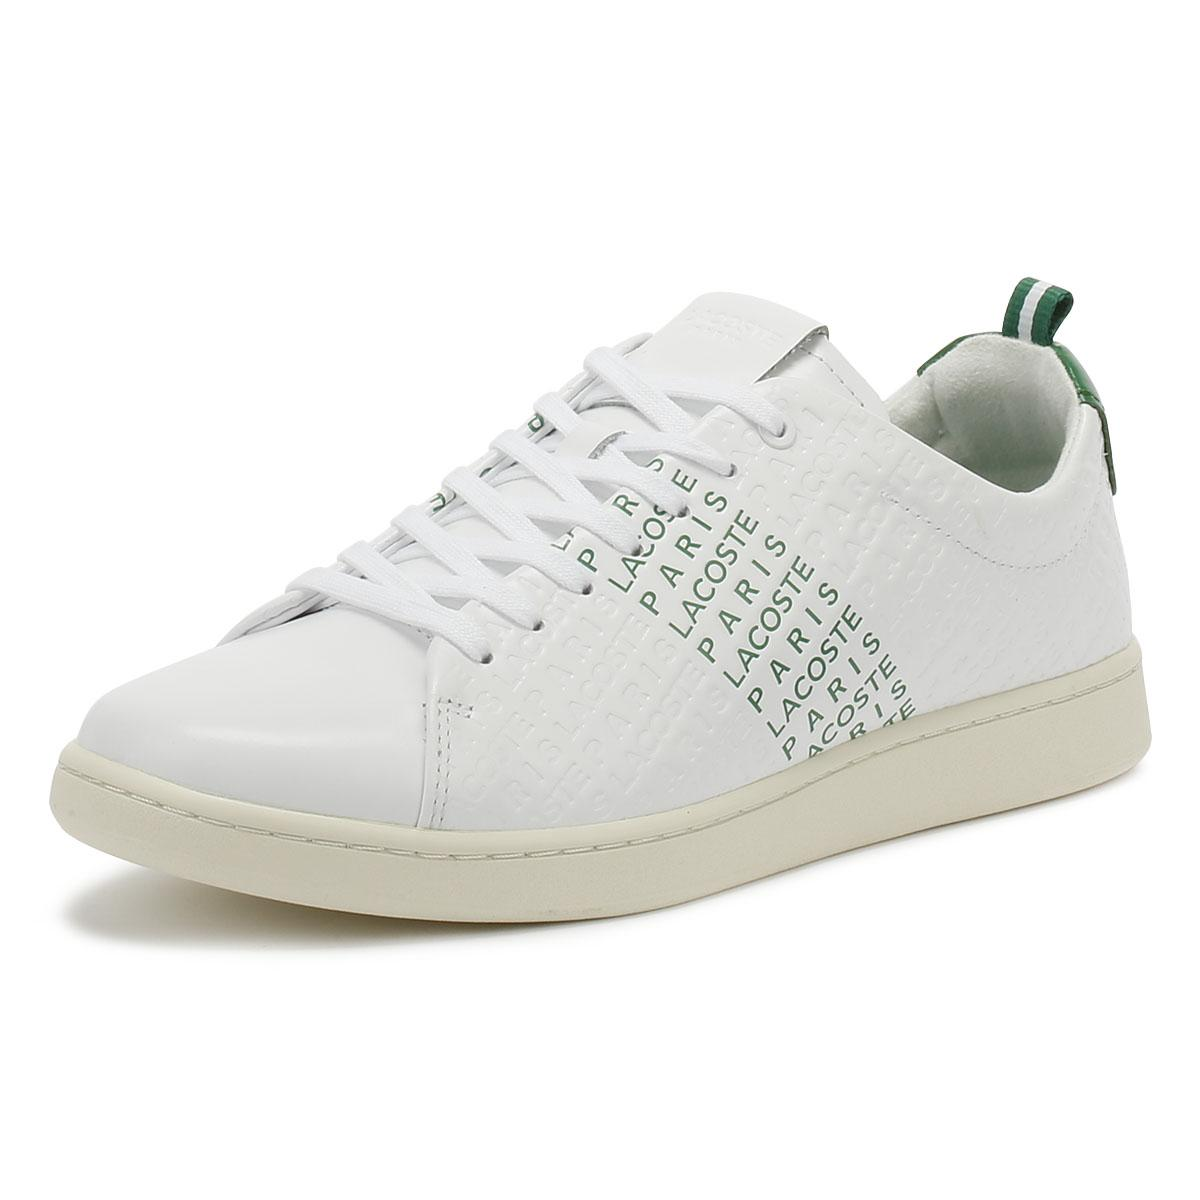 Green Trainers Sport Casual Shoes Lacoste Carnaby EVO 119 9 Mens White